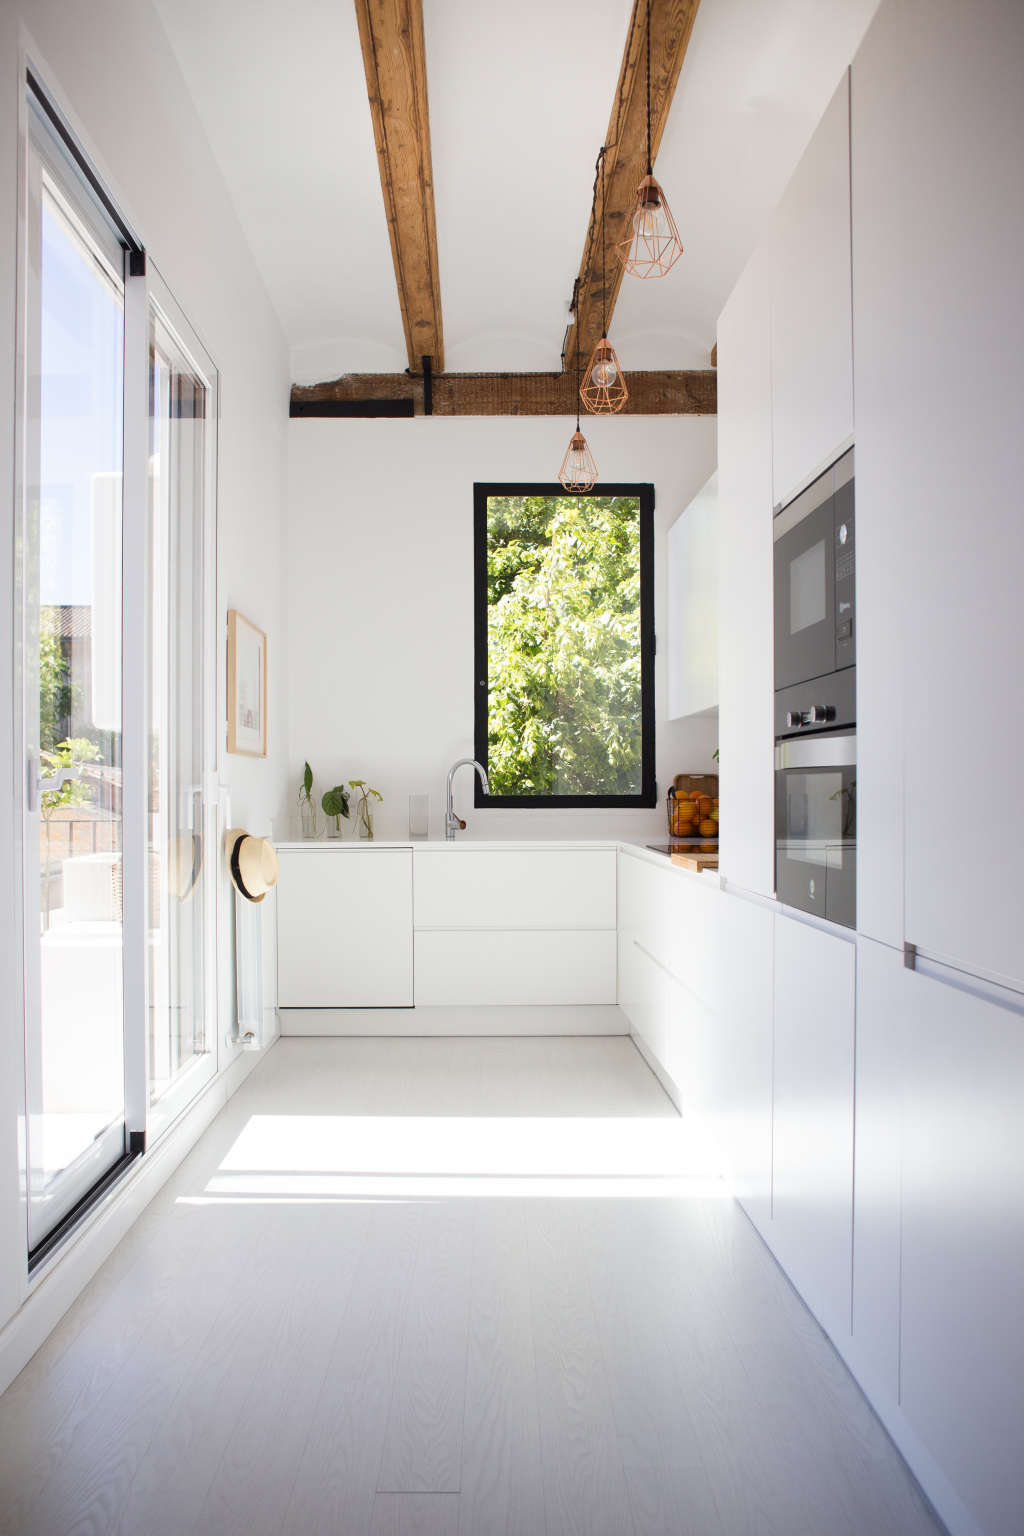 Minimal & Modern Kitchens That Don't Look Like Kitchens